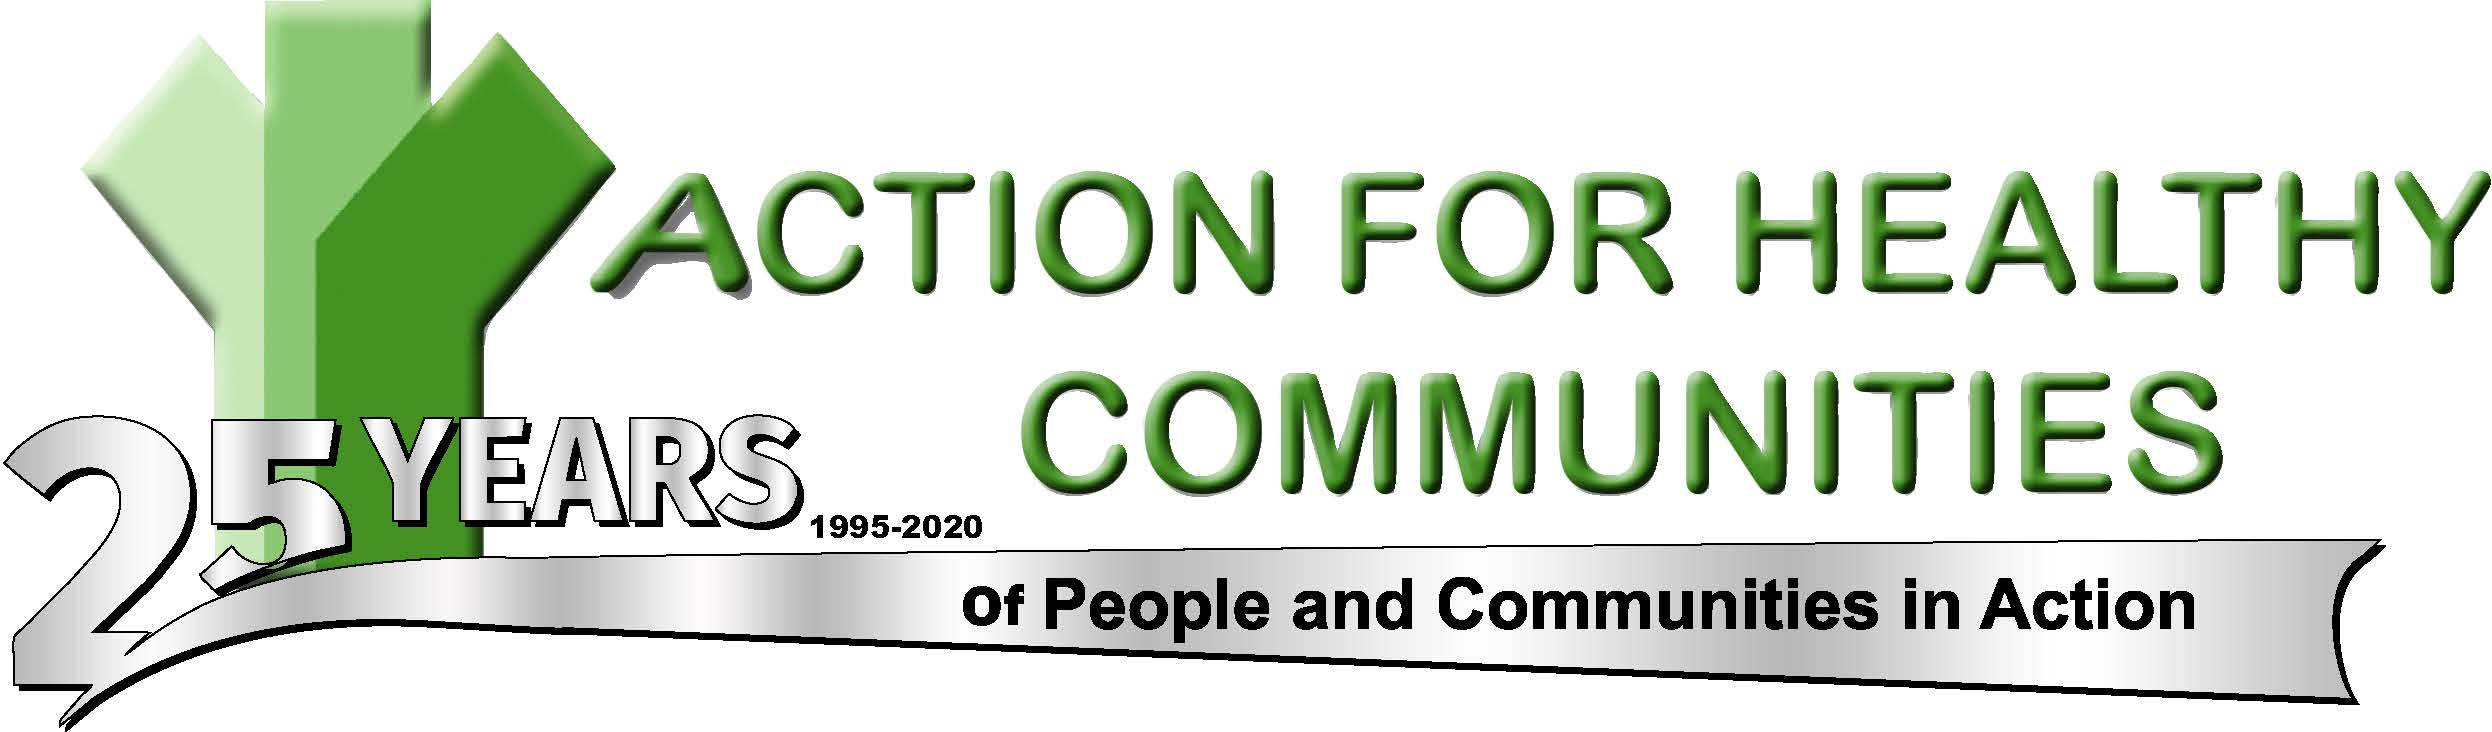 Action for Healthy Communities